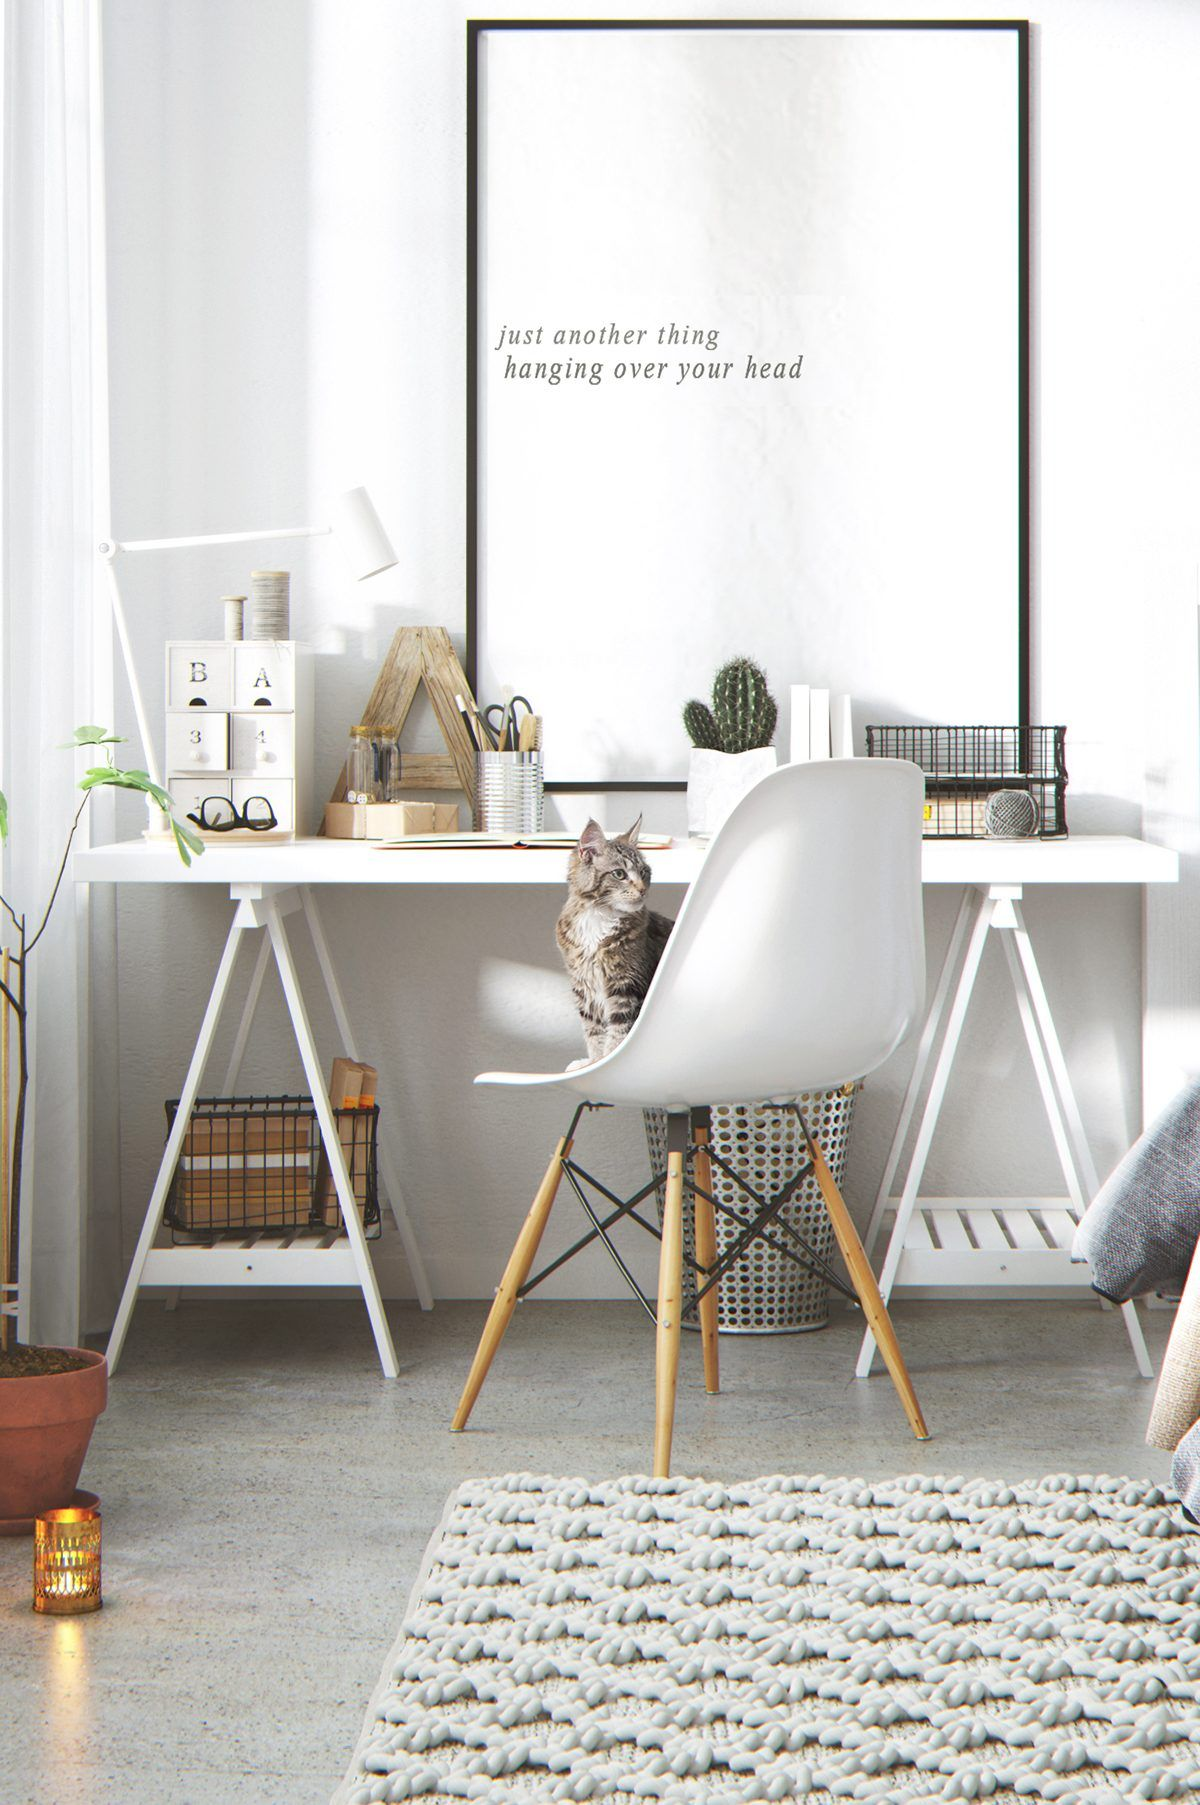 Get inspired with these modern scandinavian home office workspace design ideas that are inspired by the scandinavian design trend all featuring beautiful